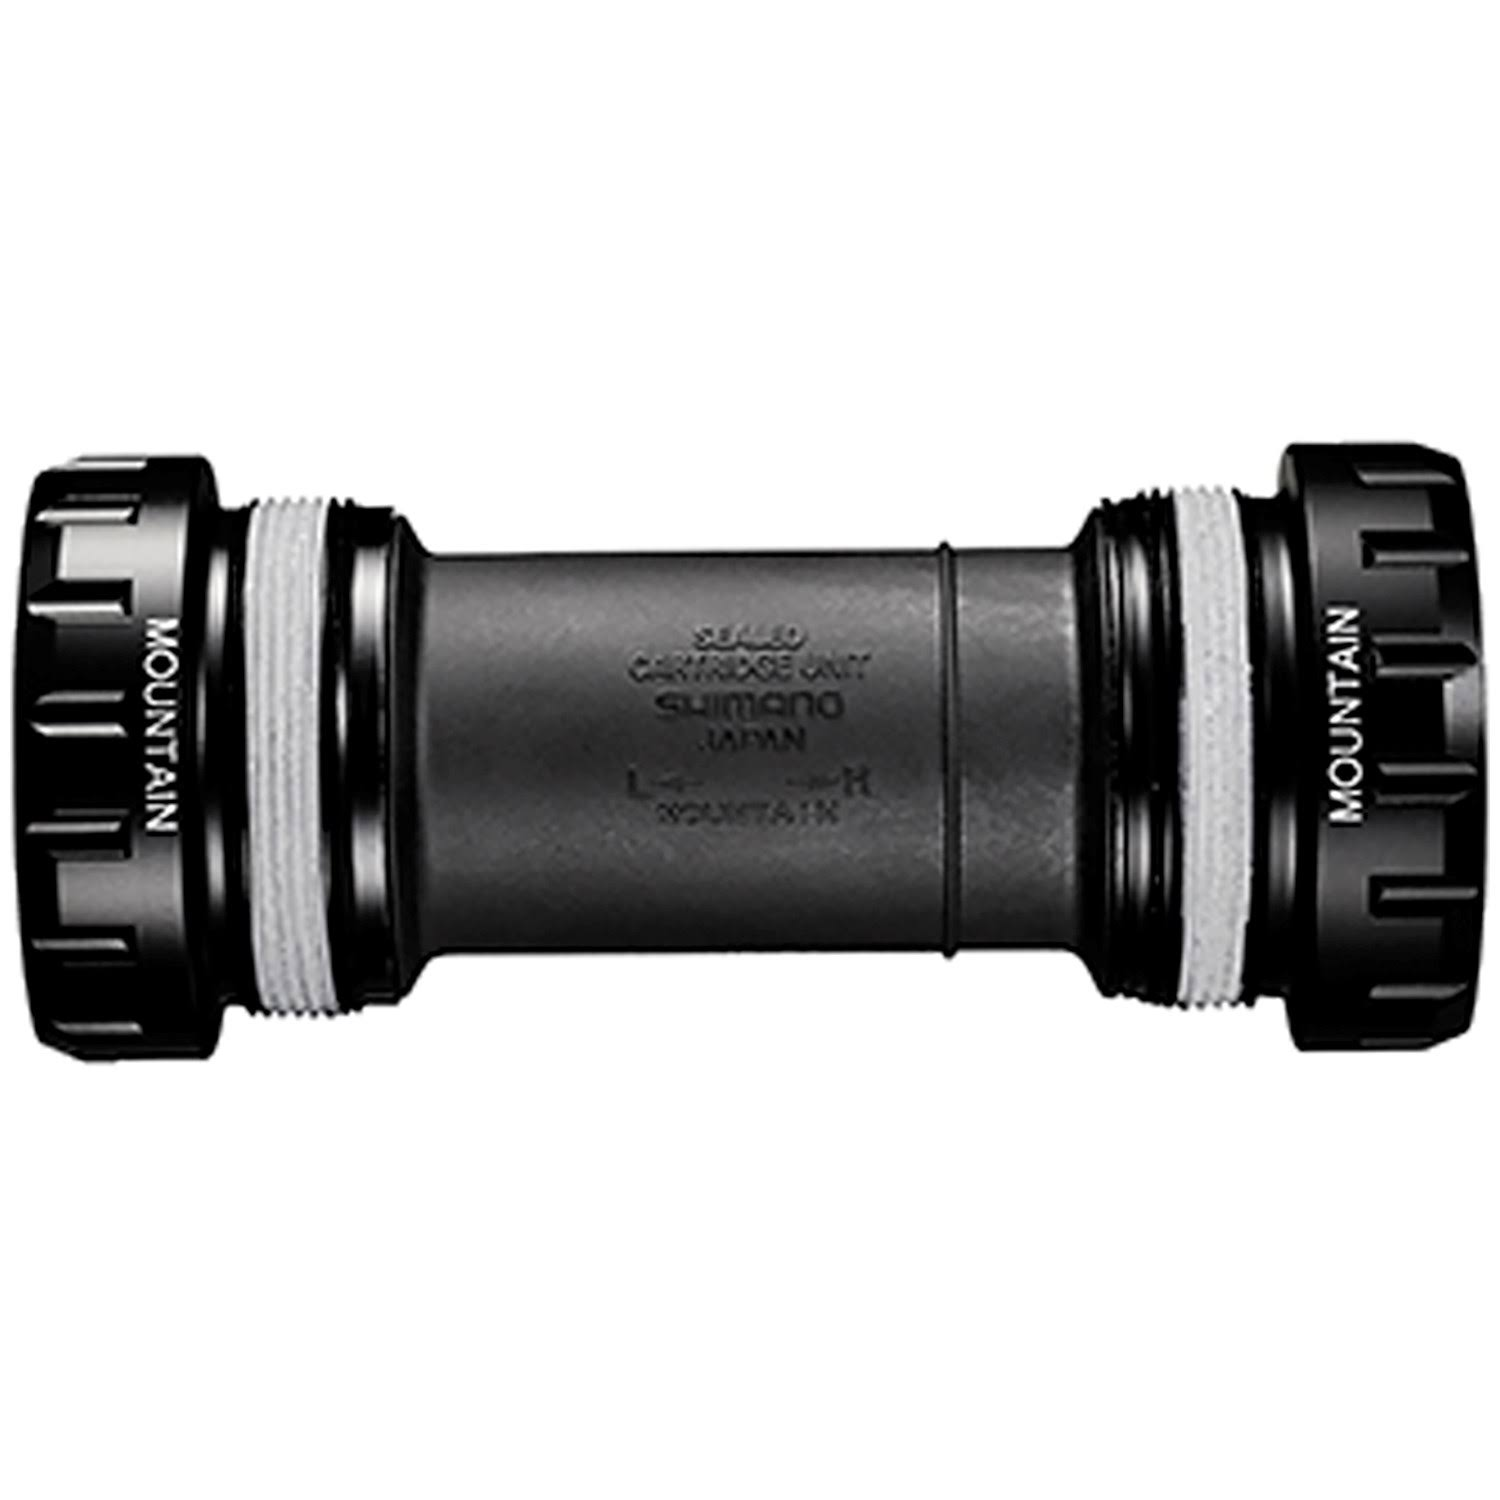 Simano Deore Bottom Bracket - 73mm